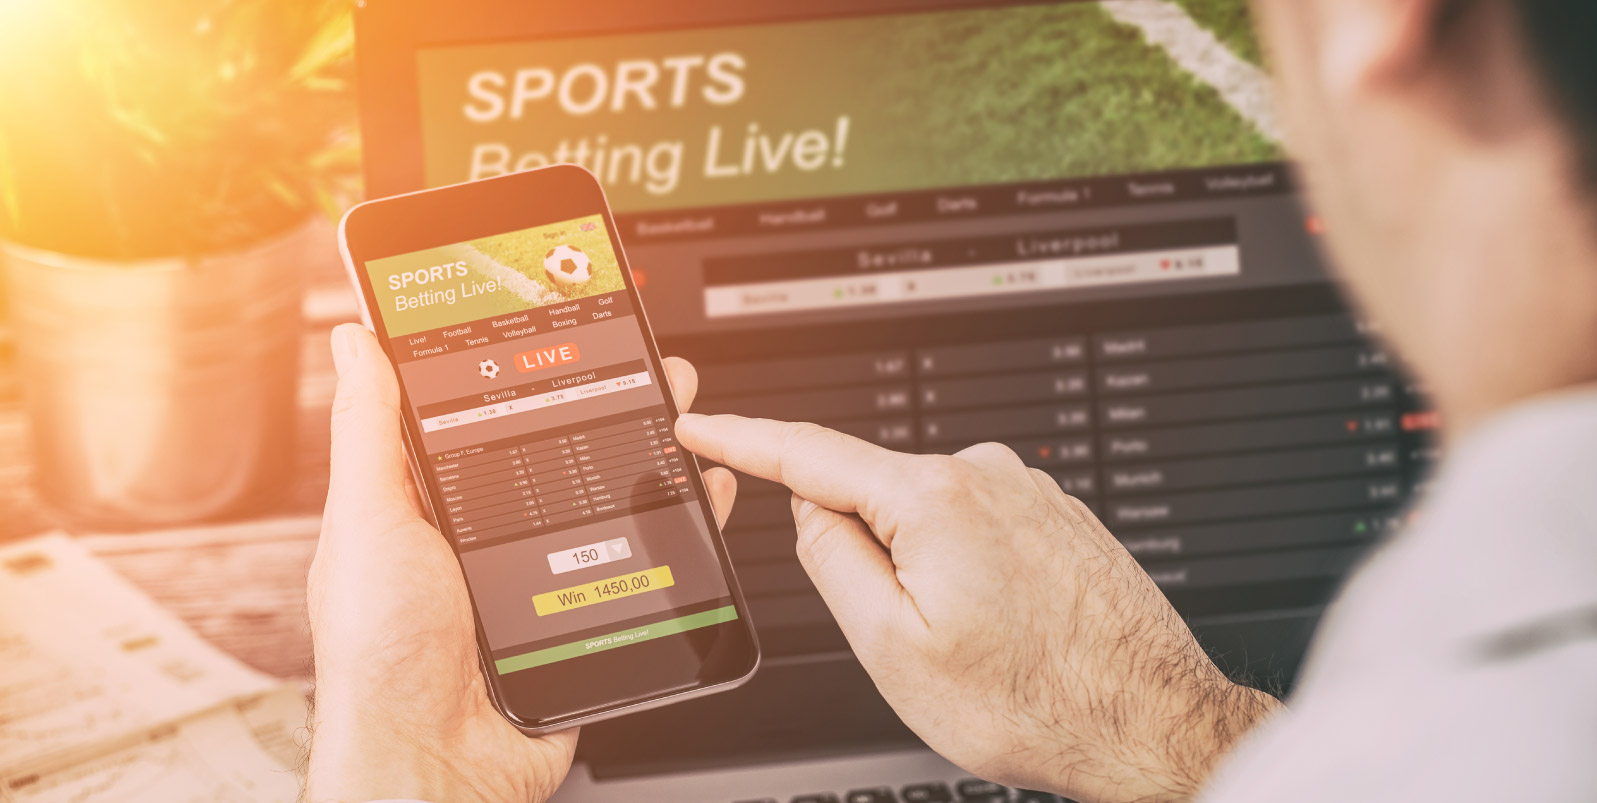 Sports betting: a leader in online play